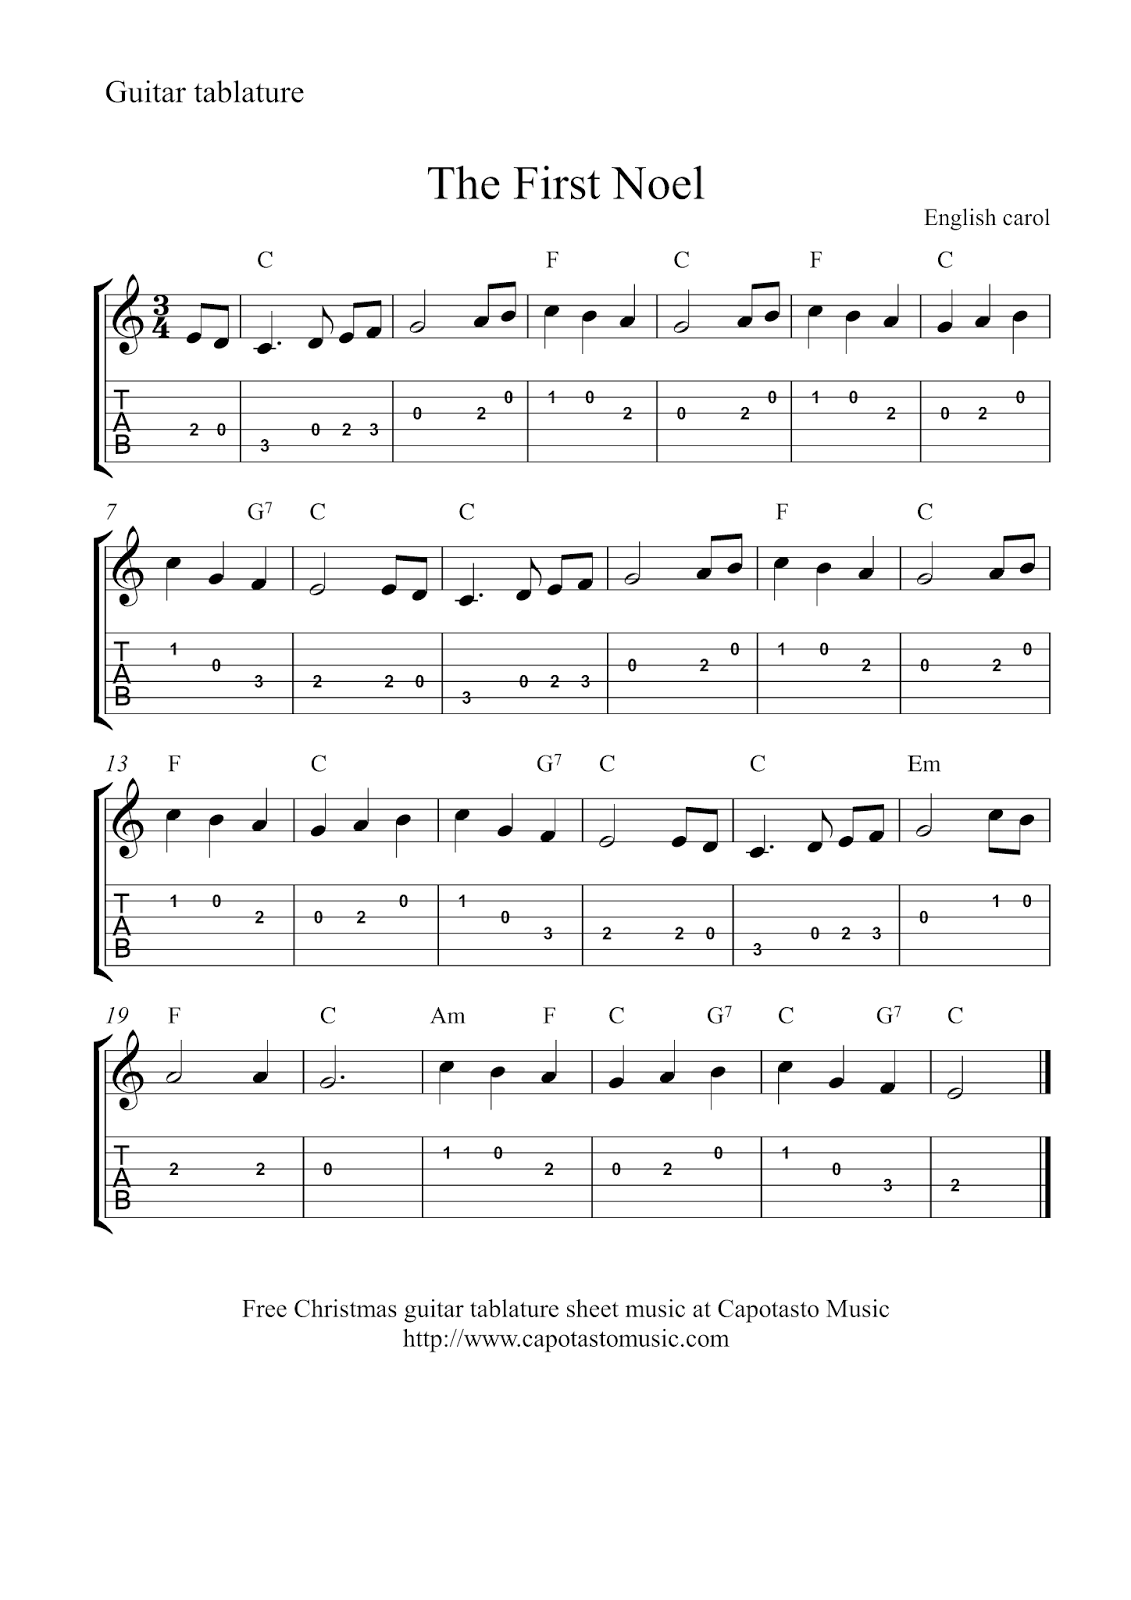 Free Christmas guitar tablature sheet music The First